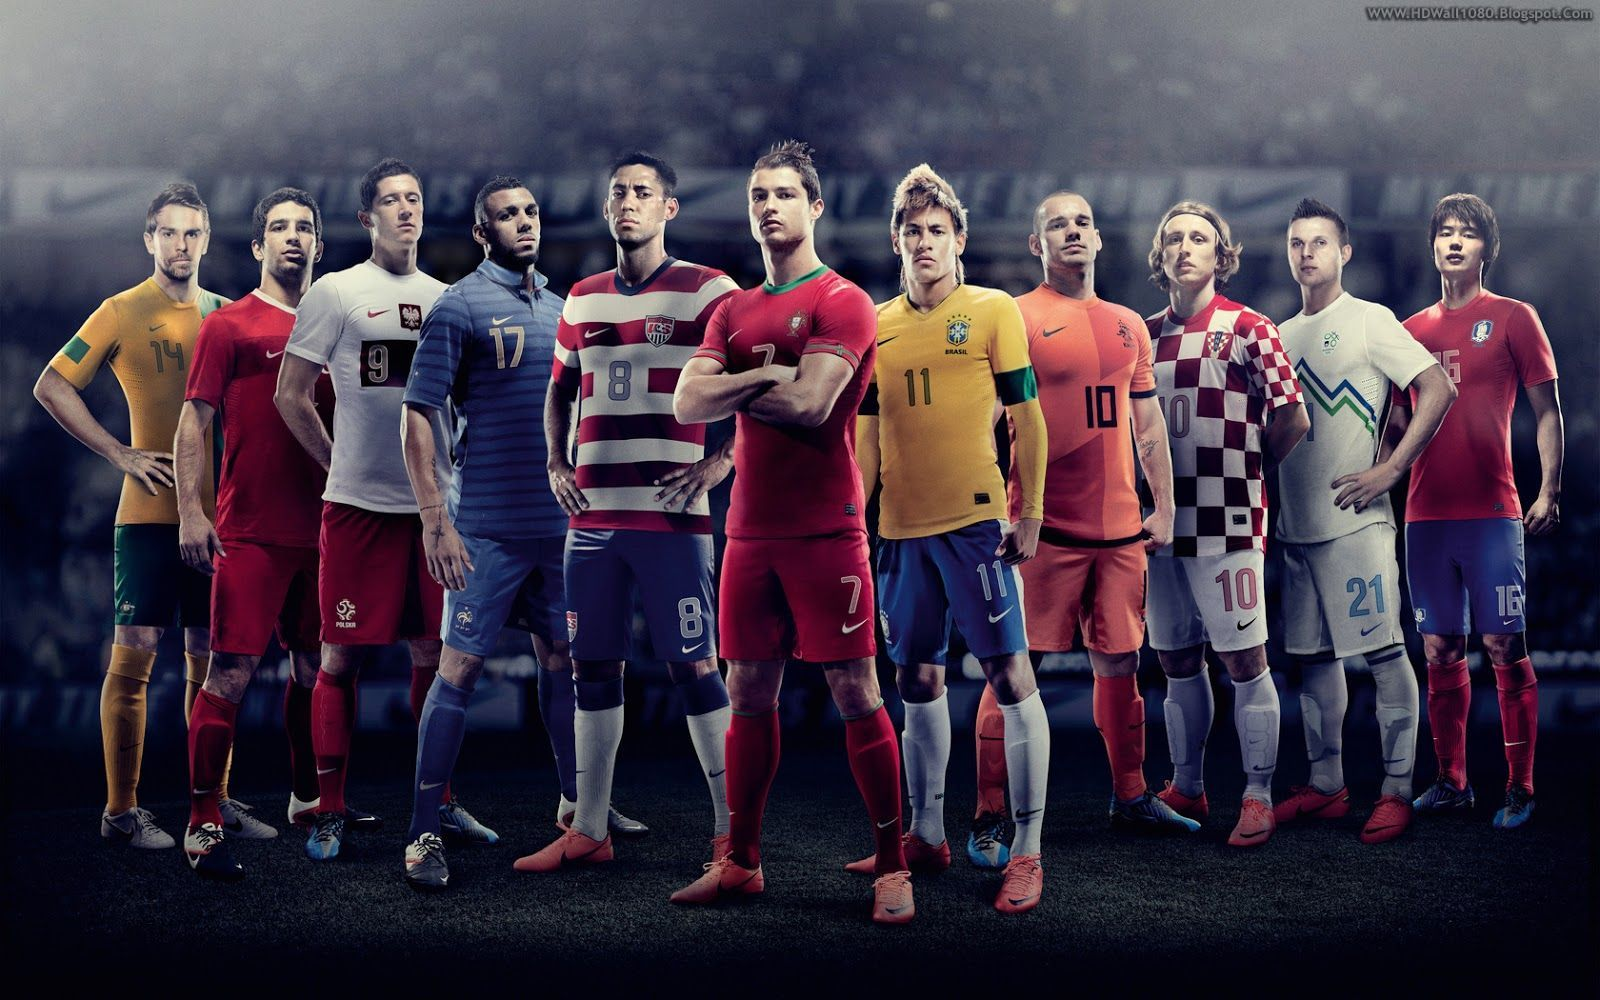 Wallpaper HD Football Players